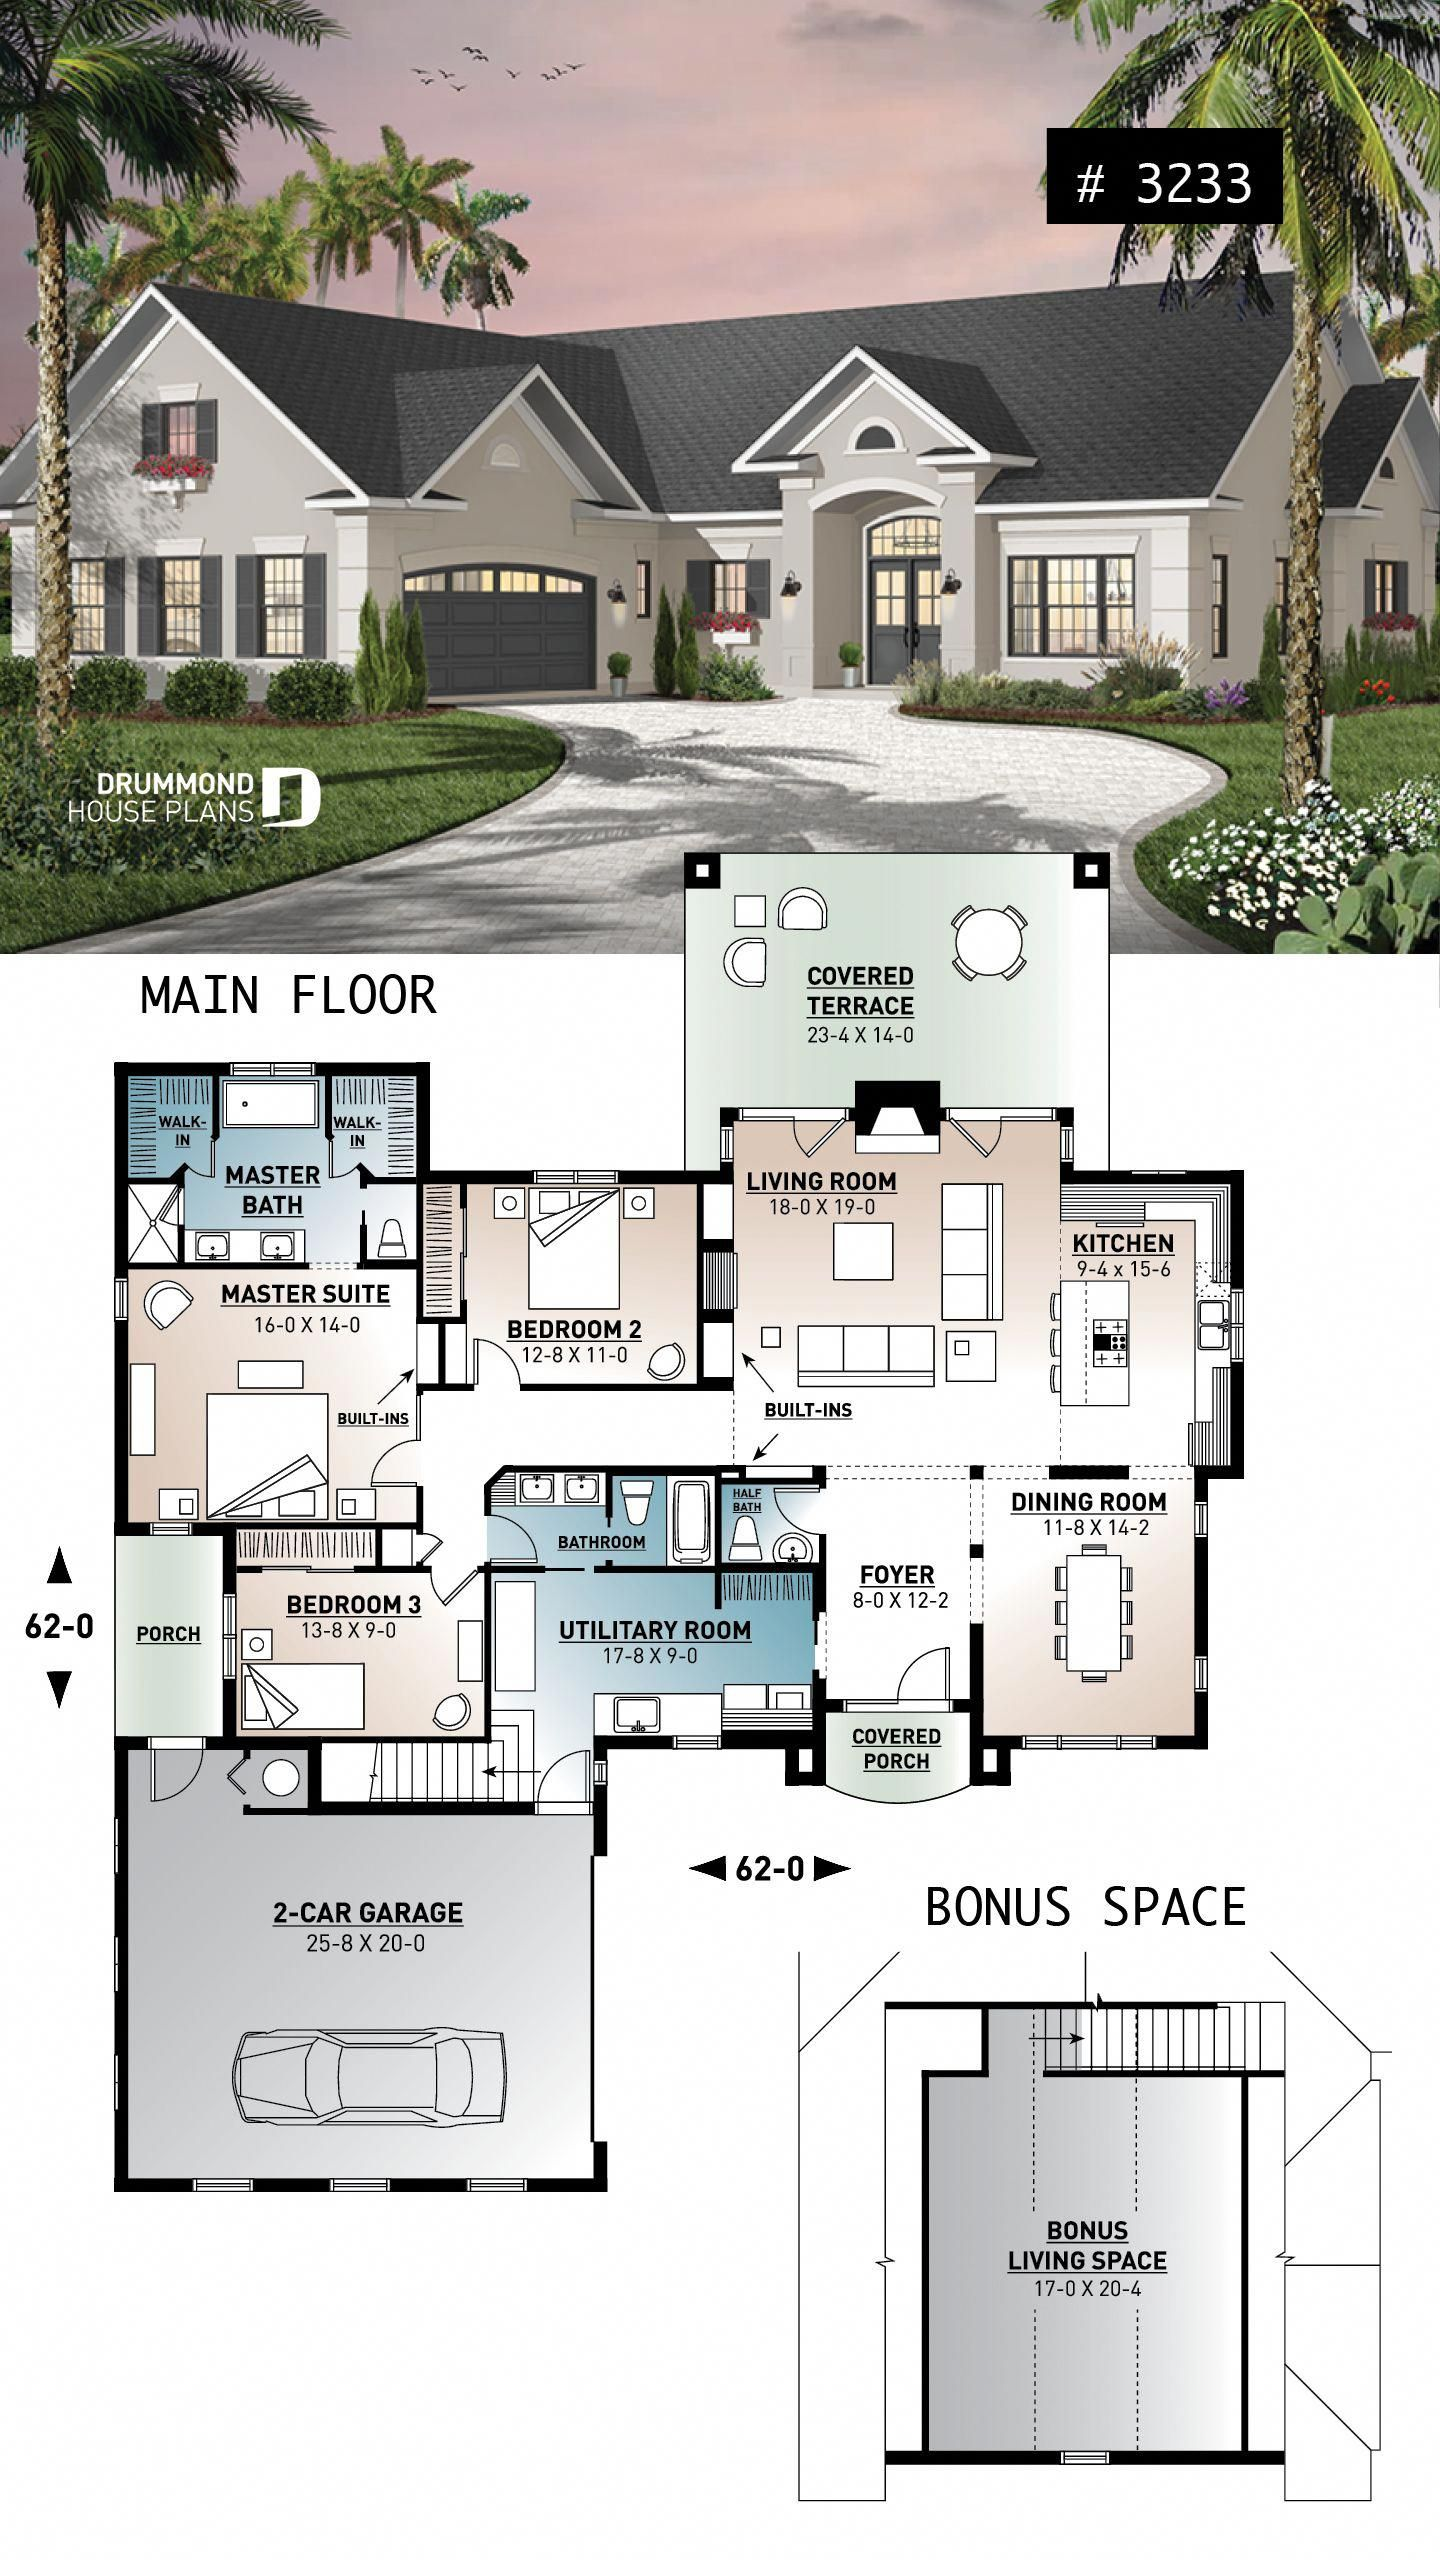 Have A Look At These Fabulous Plans Intended For Country Countrycottagedecorpieces Sims House Plans House Blueprints Sims 4 House Plans